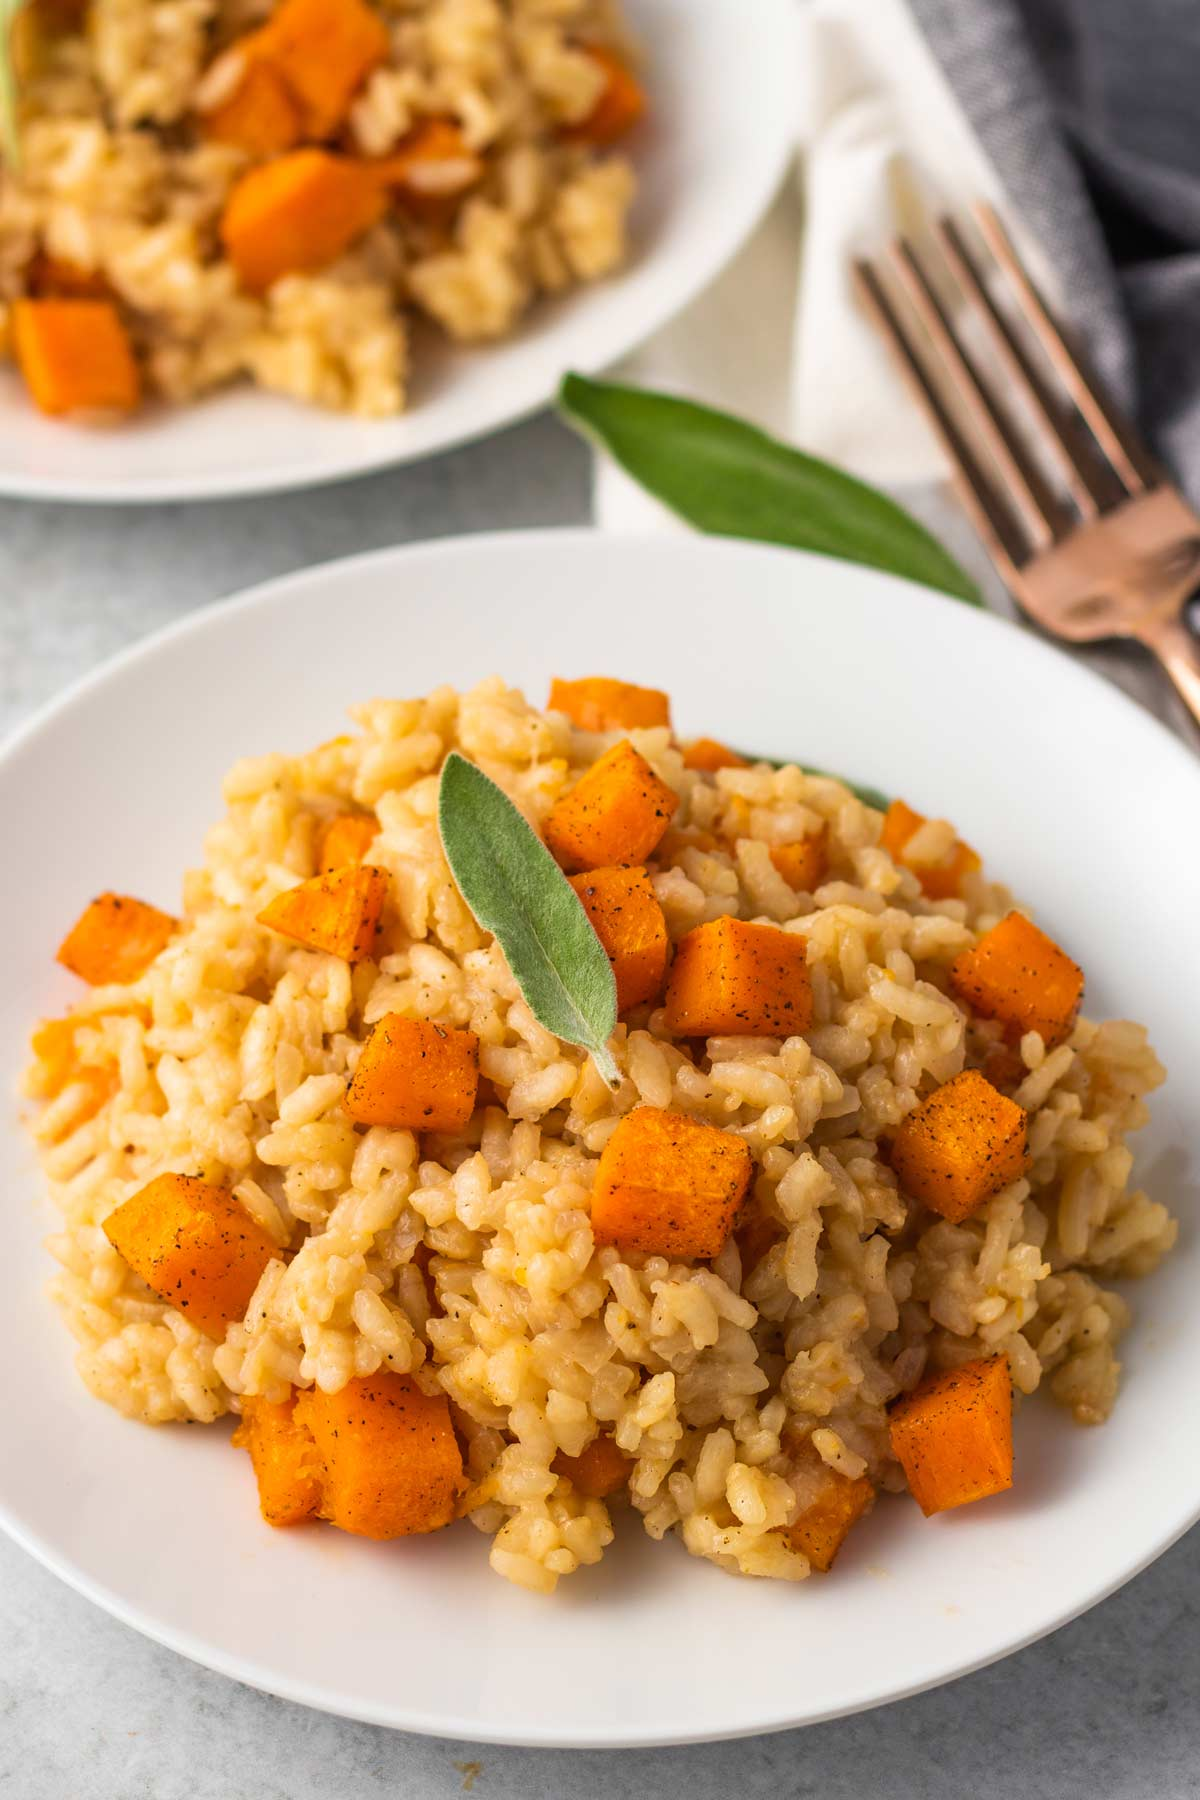 bowl of risotto with roasted butternut squash and a sage leaf on top.